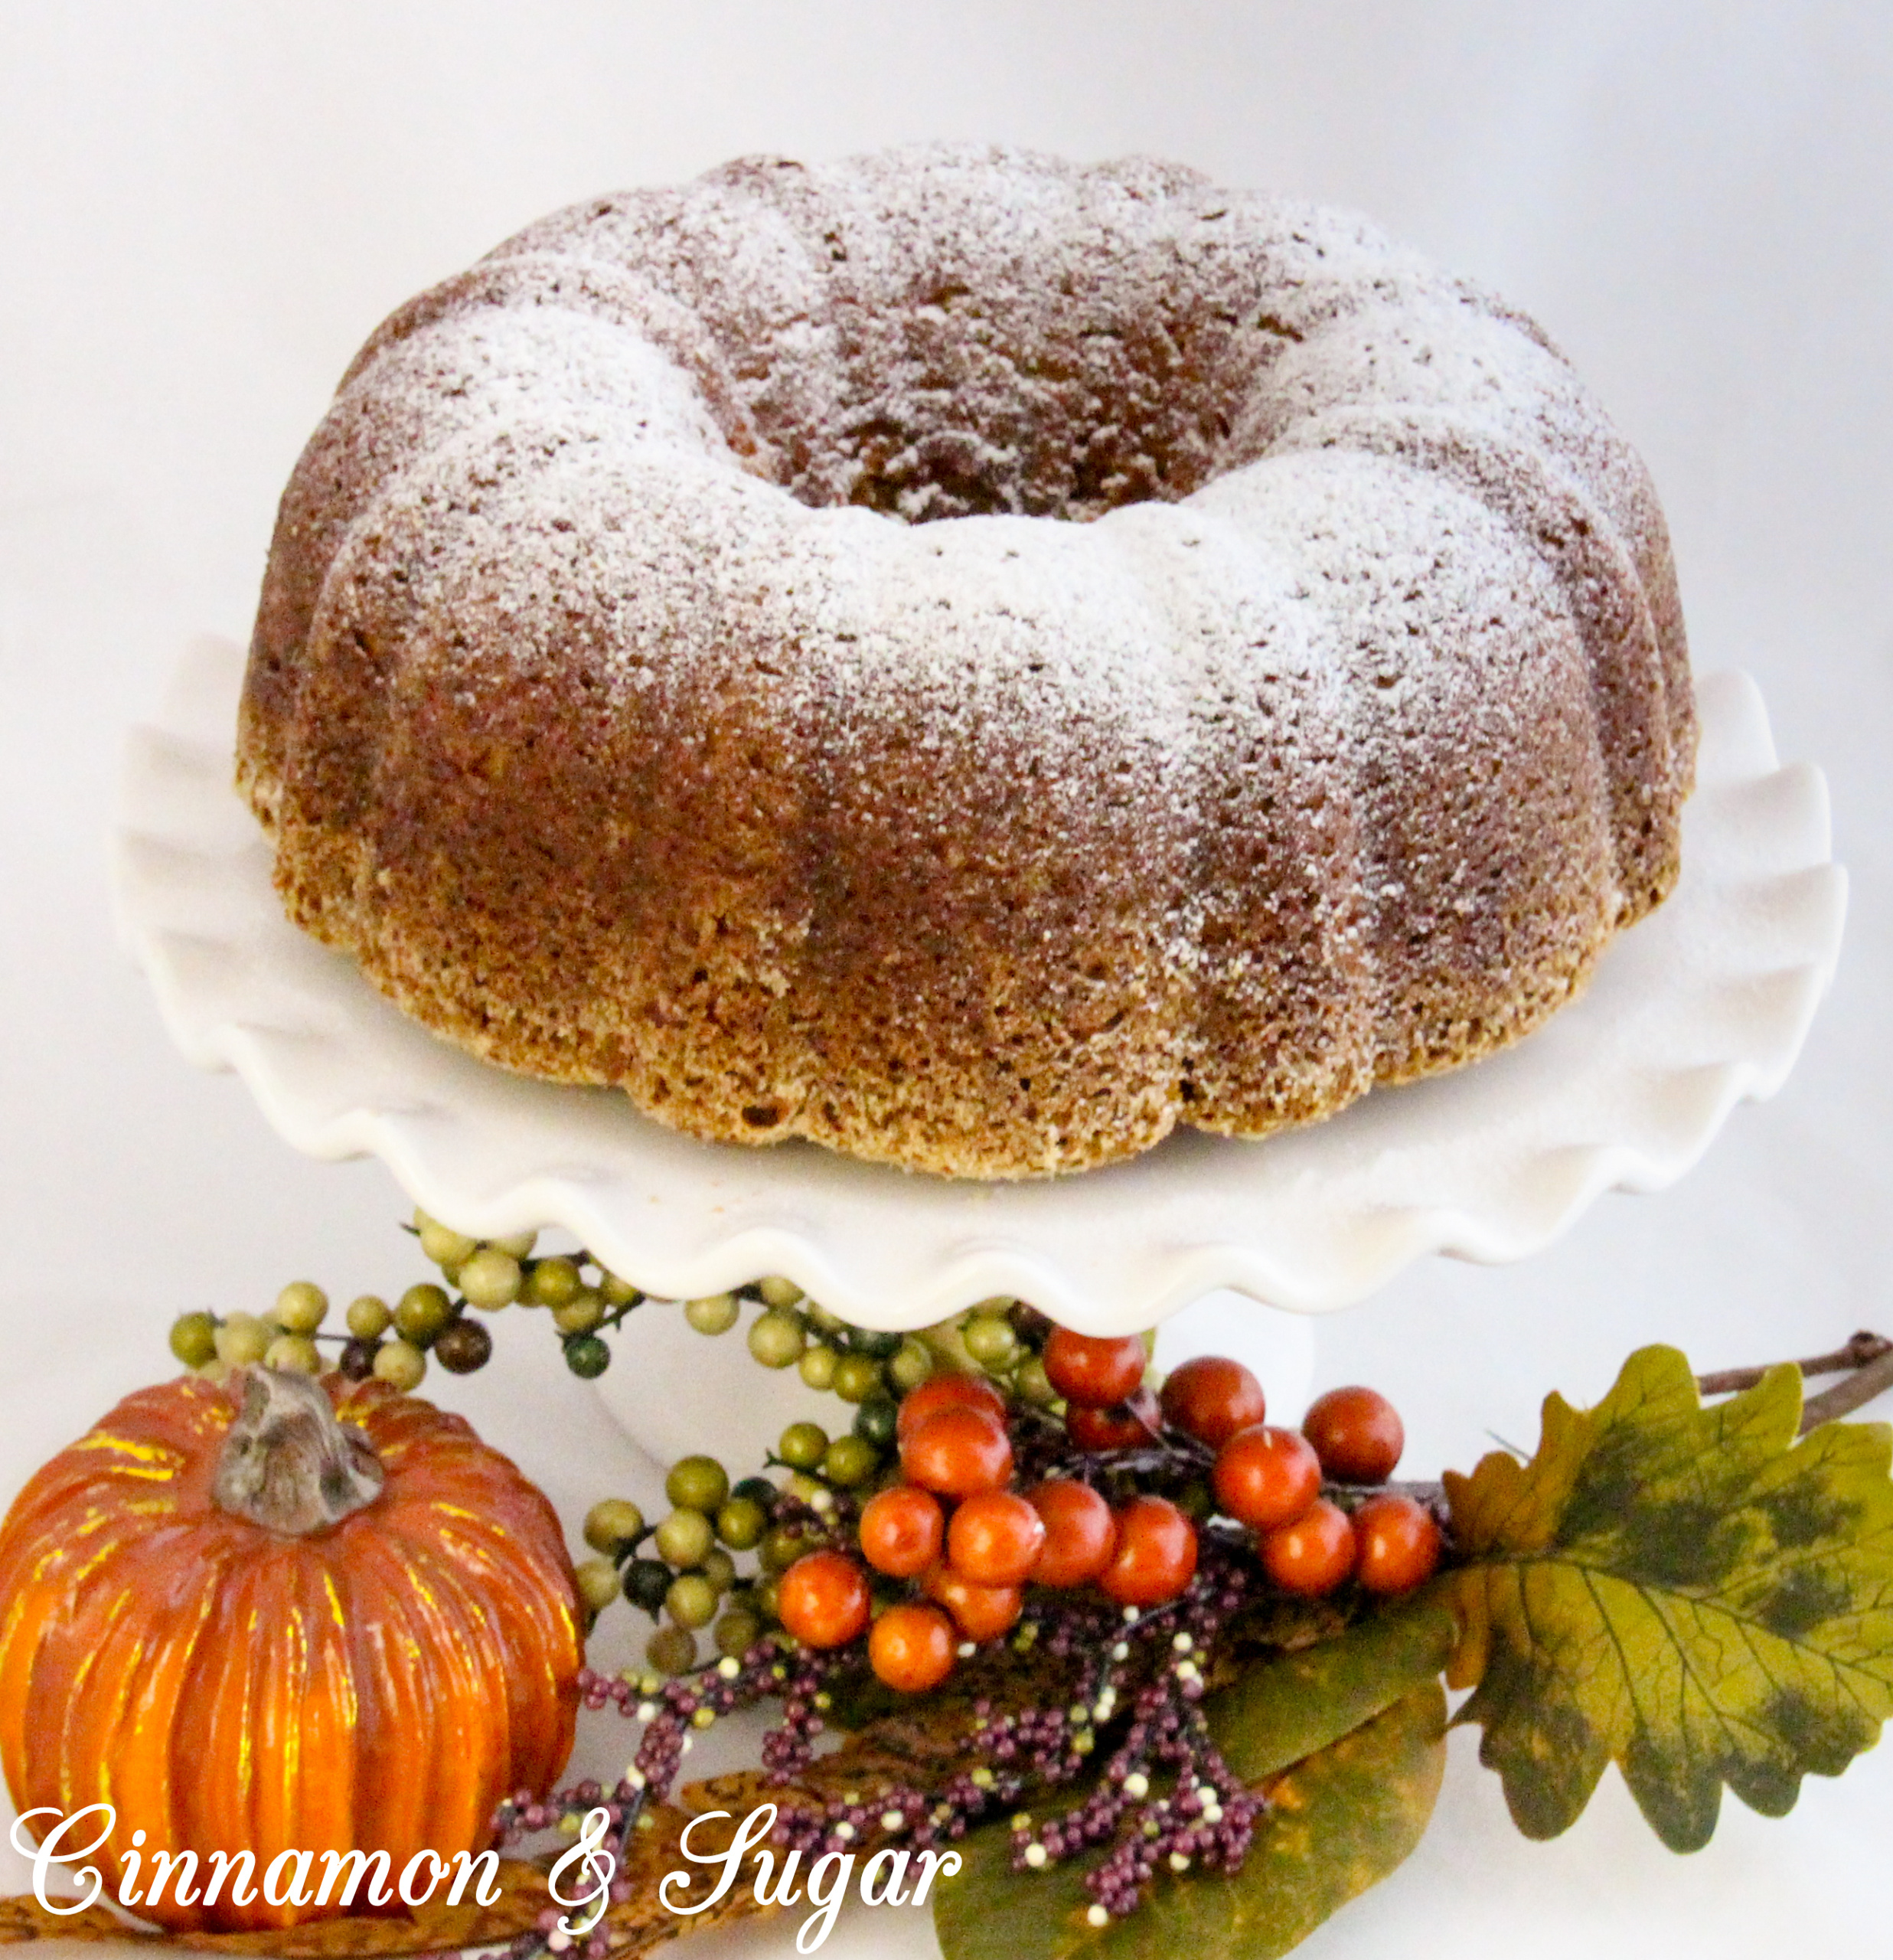 Grandma Peggy's Pumpkin Bundt Cake uses three cups of pumpkin which makes this cake super moist! The pumpkin flavor shines through and enhances the generous use of warm spices. Recipe shared with permission granted by Krista Davis, author of THE DIVA SPICES IT UP.